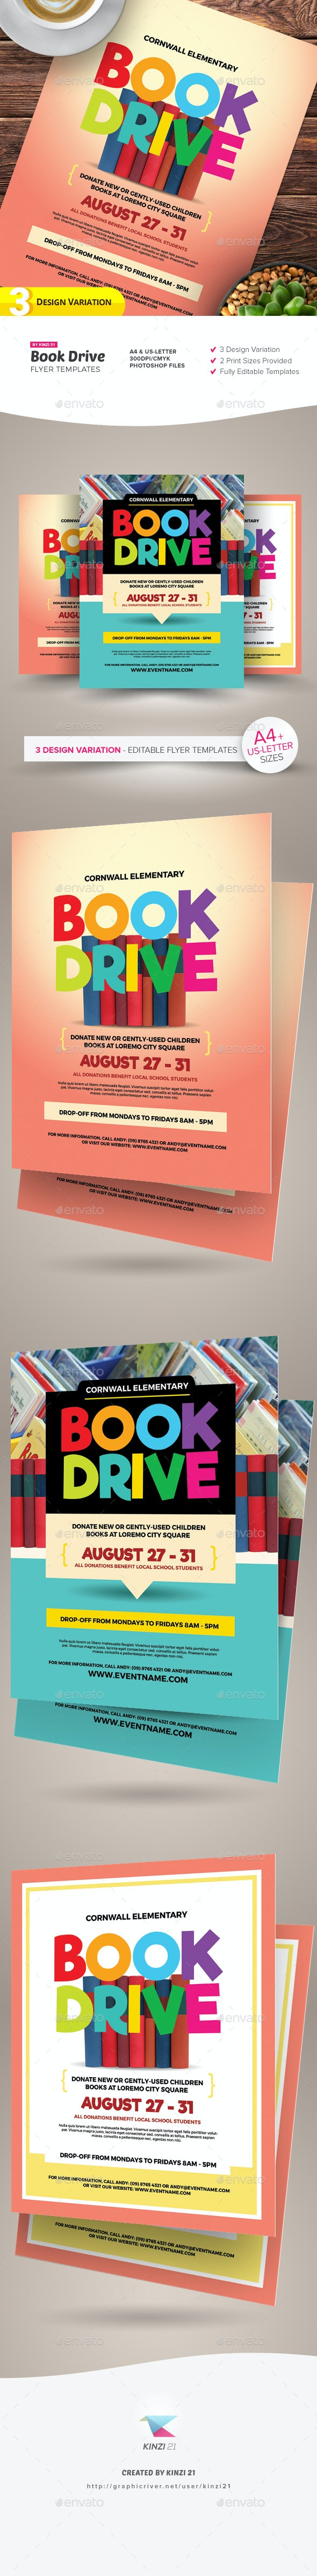 Book Drive Flyer Templates - Miscellaneous Events